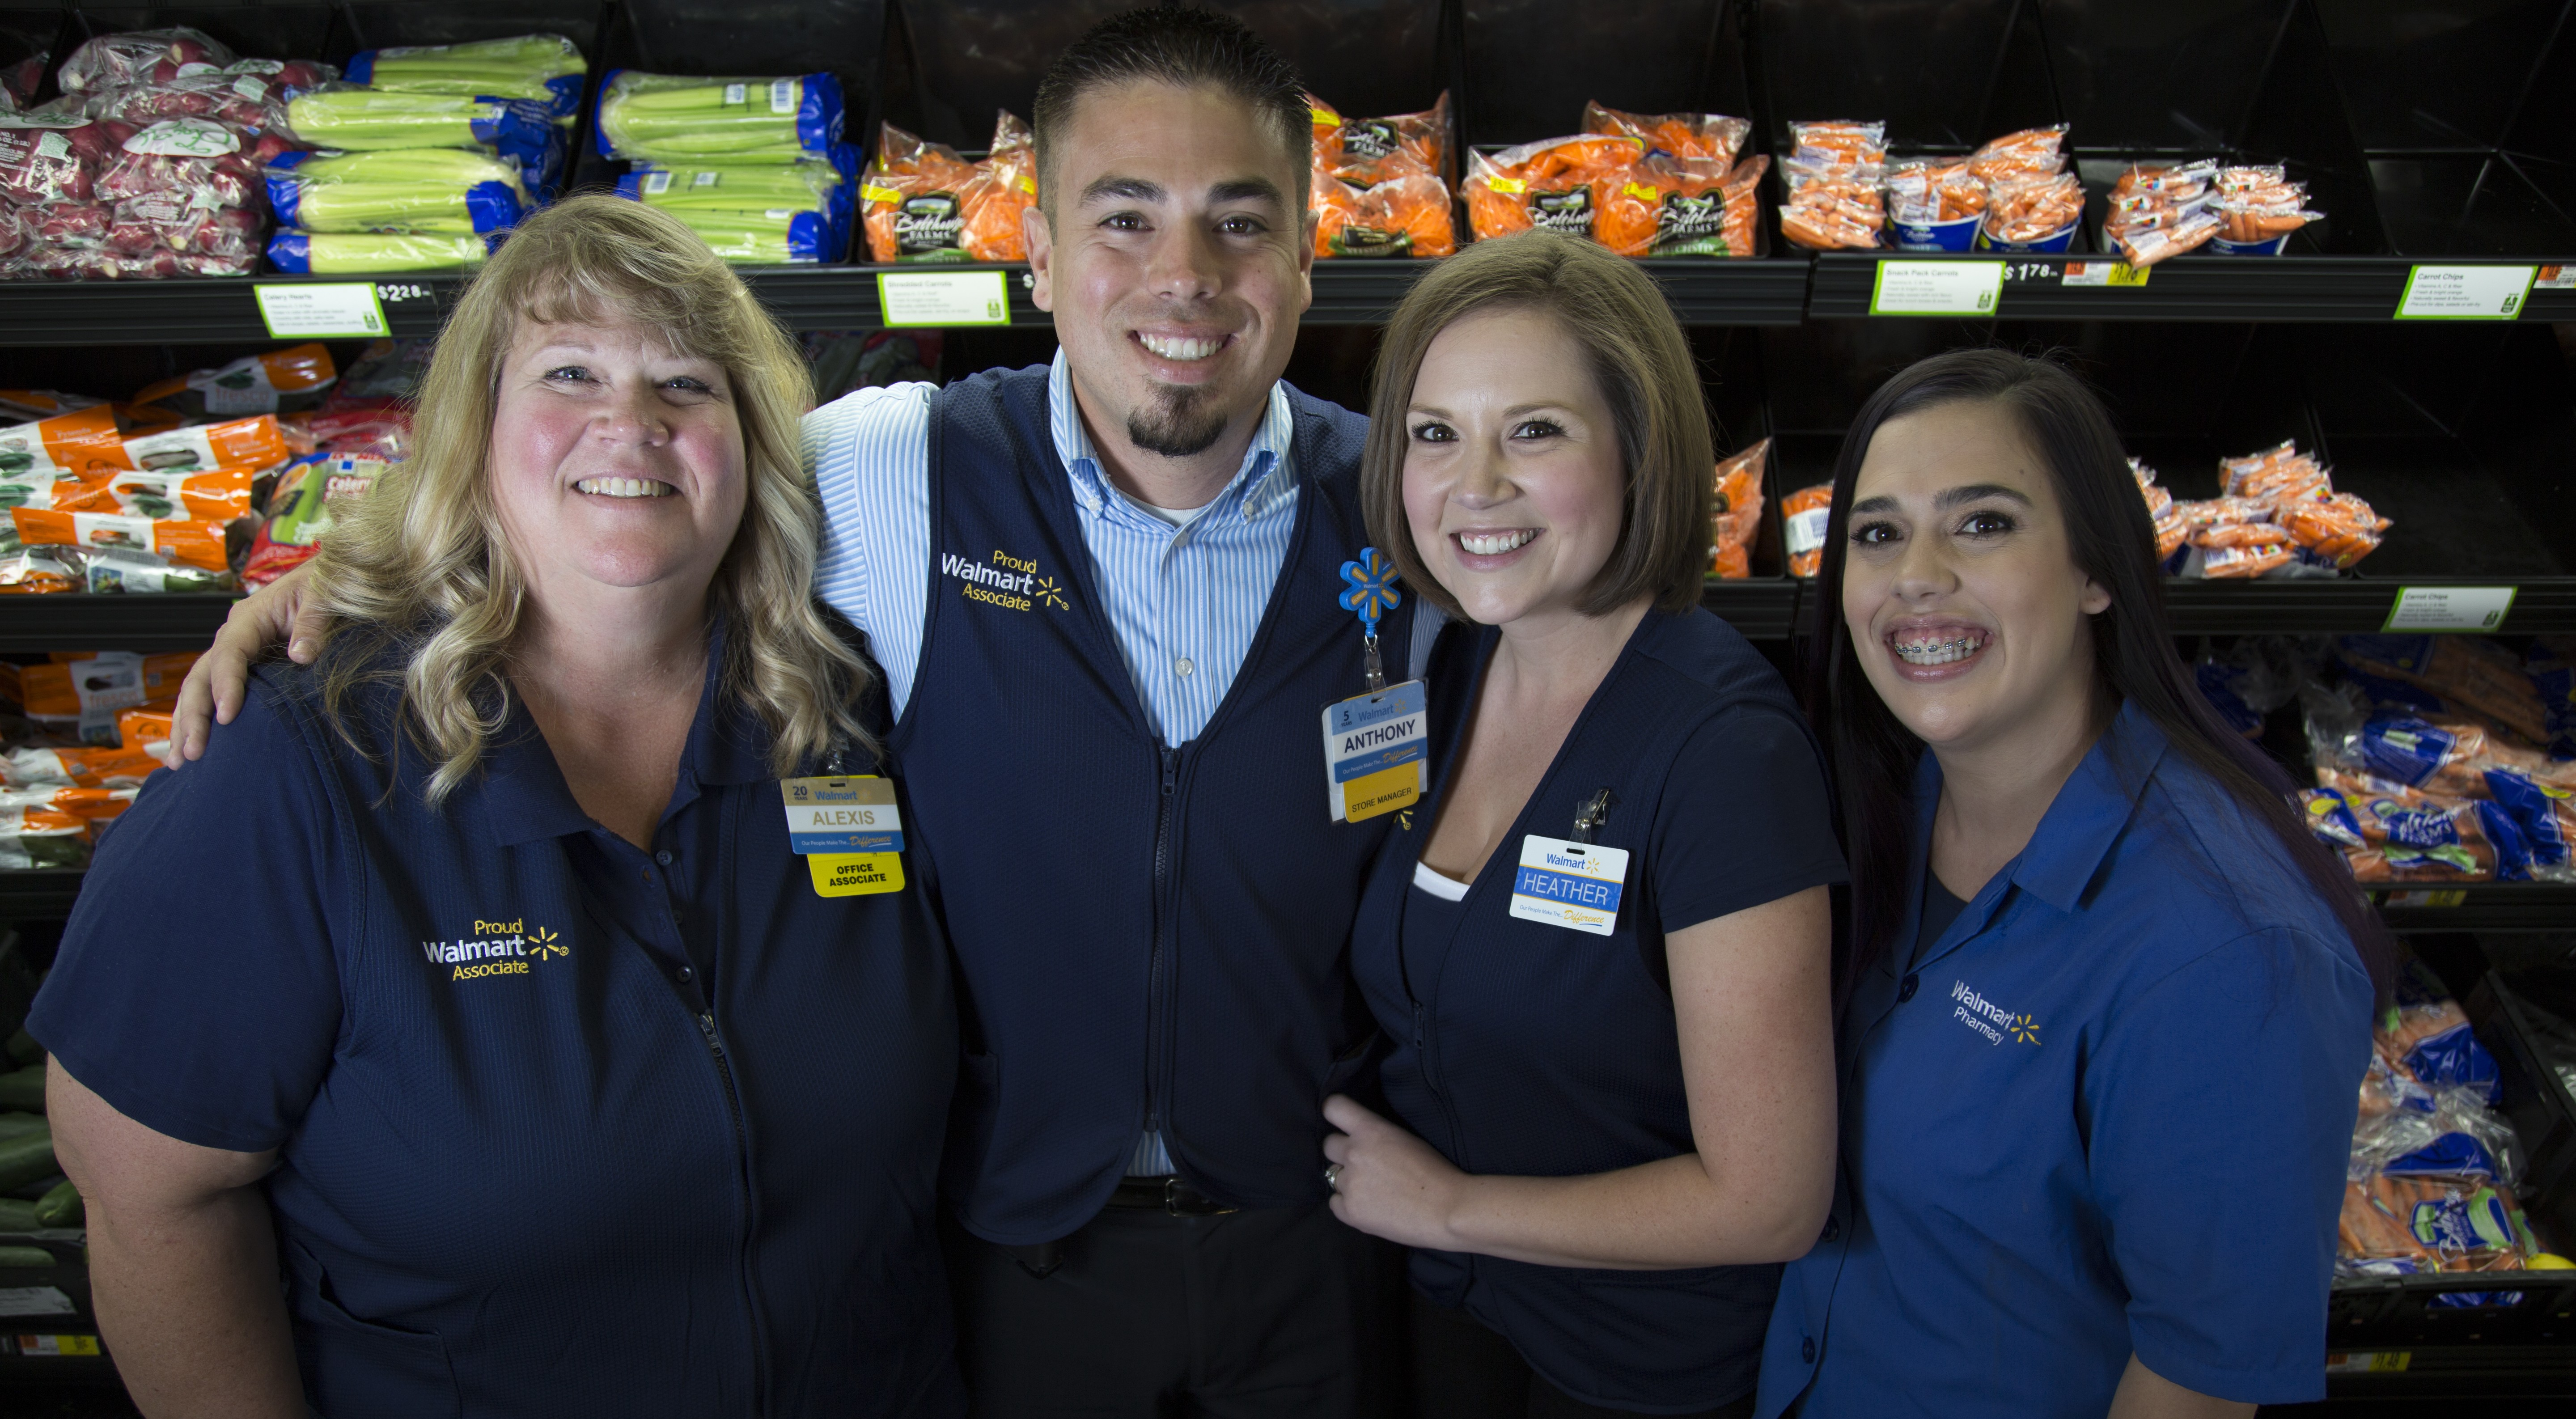 Four Walmart associates stand together with their arms wrapped around each other